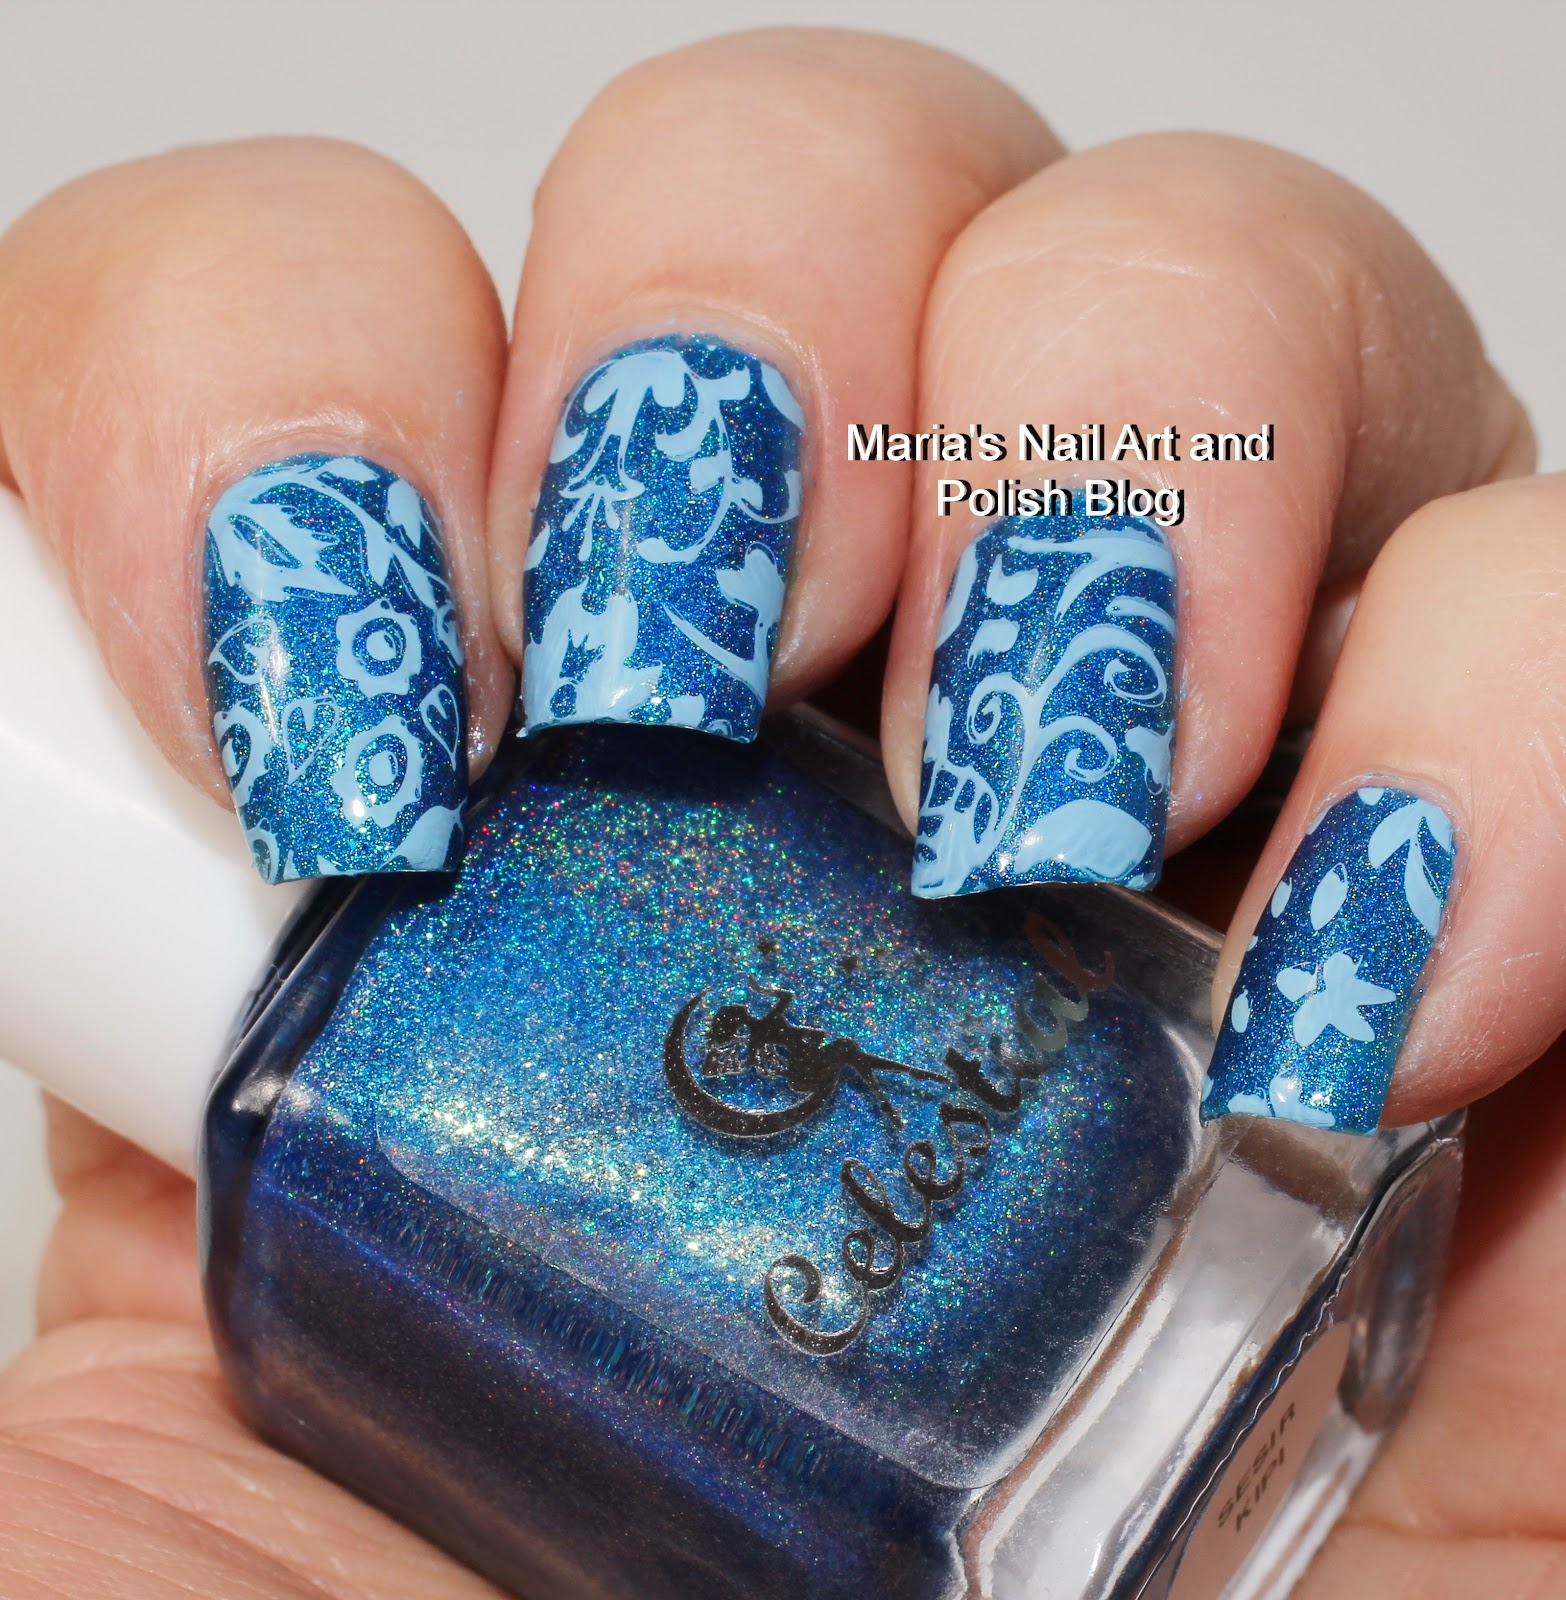 Wandfarbe Majorelle Blau 7: Marias Nail Art And Polish Blog: Curali Stamping Plates Review